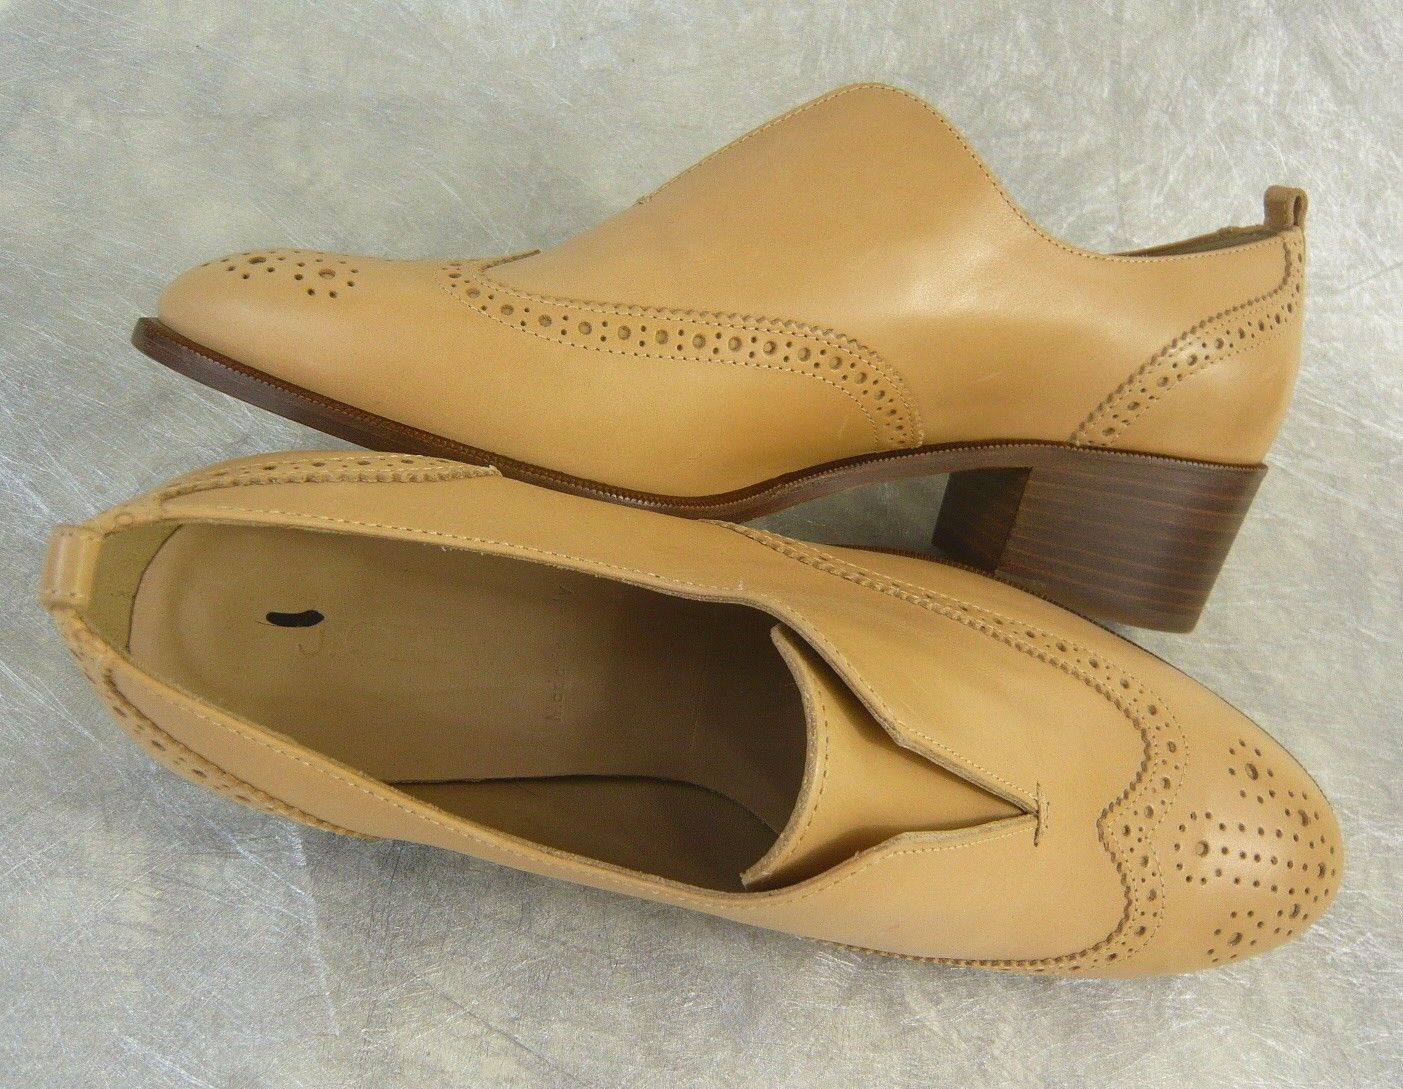 NEW J. CREW Retail    278 SLIP-ON LEATHER WING TIP LOAFERS TOASTED WHEAT 9.5 ITALY 67477a